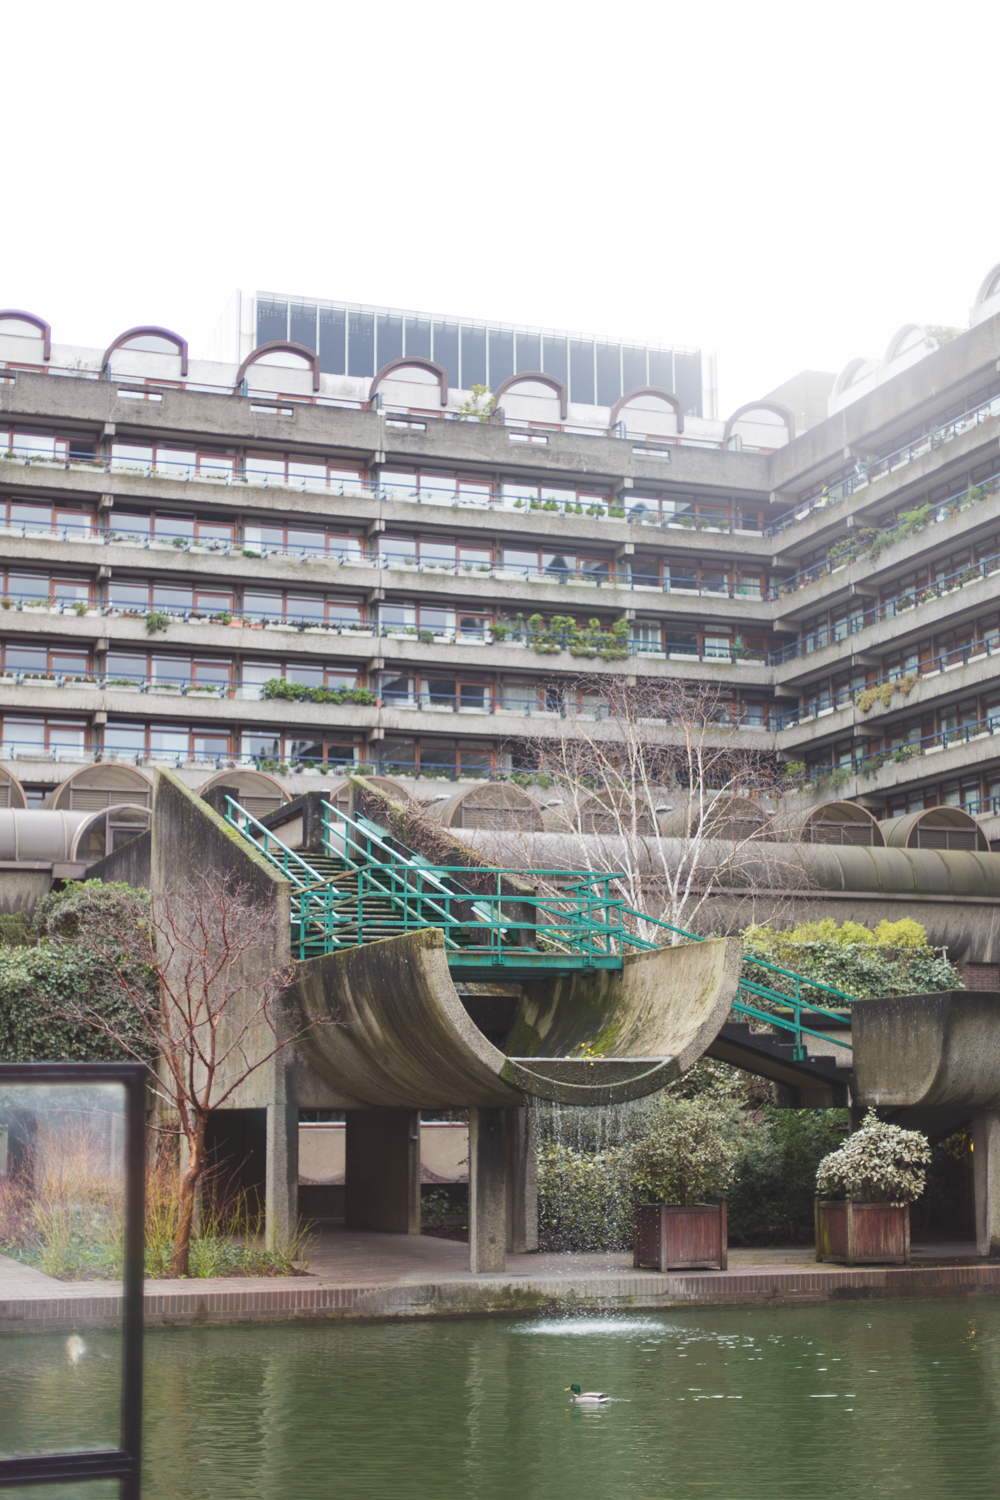 The Brutalist architecture of the Barbican situated in the City Of London.